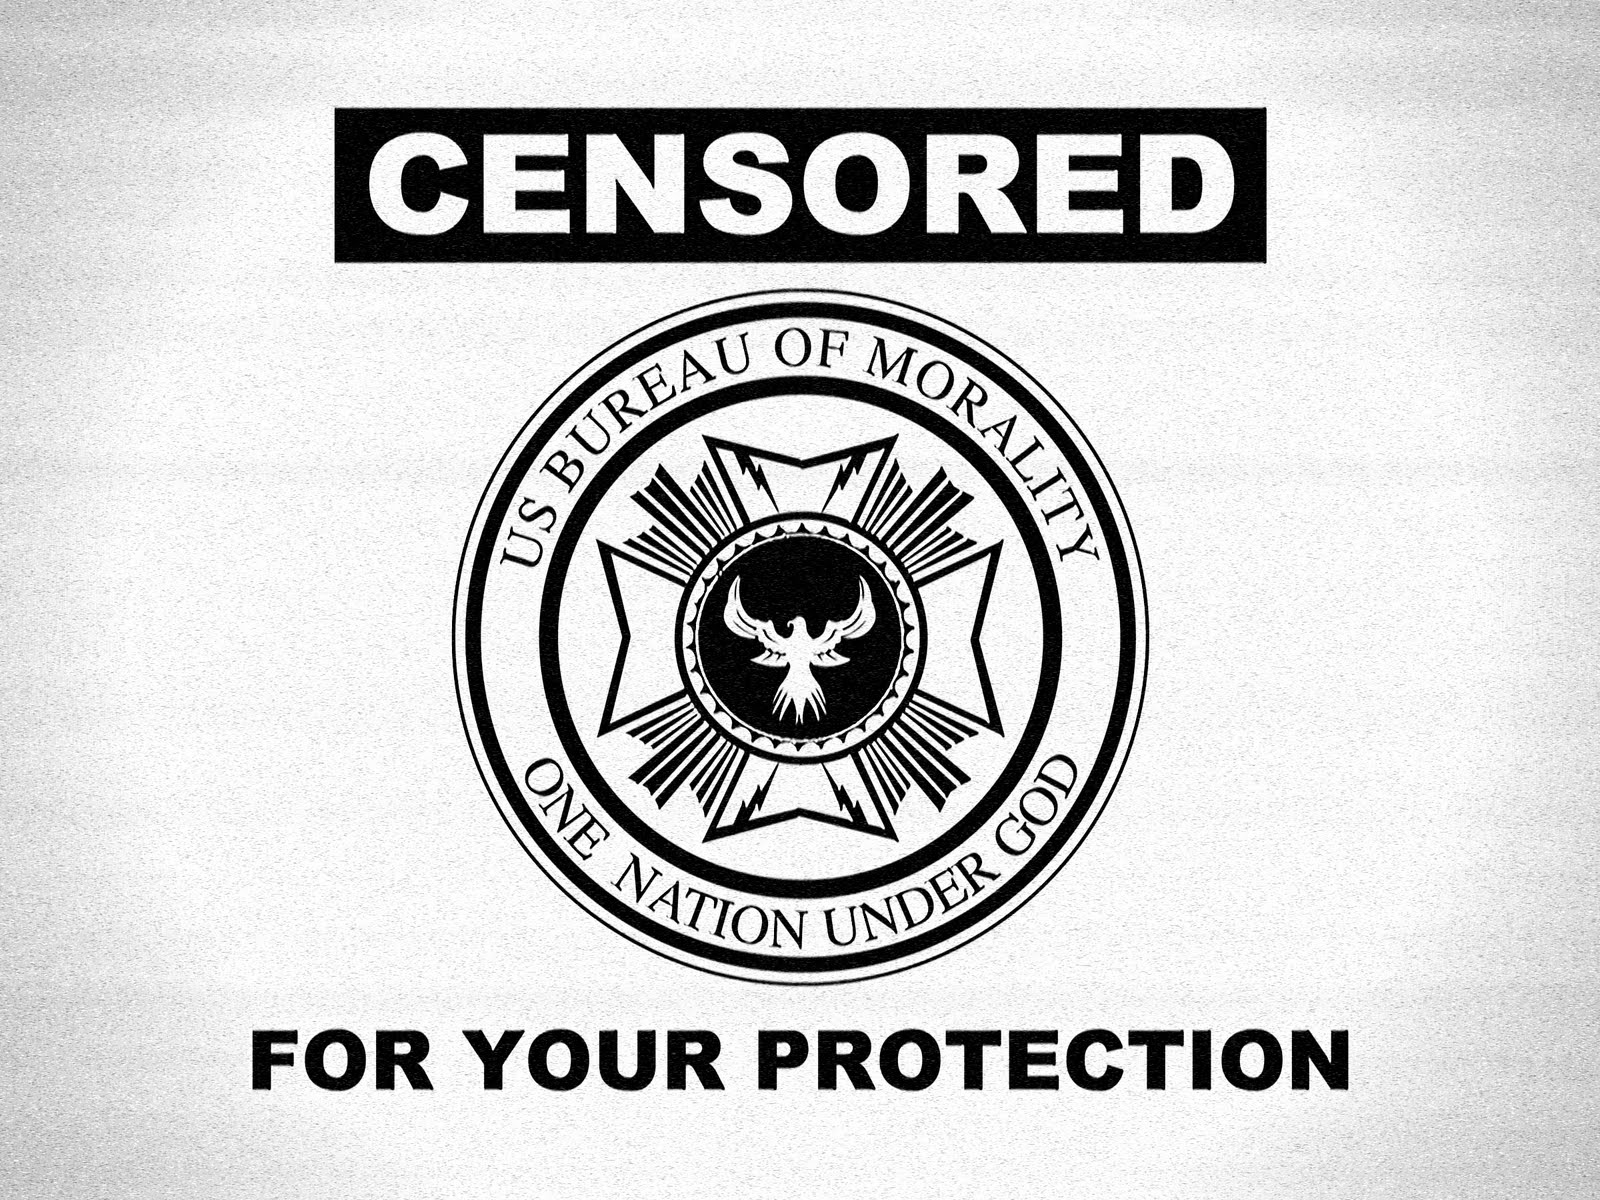 Images of Censorship | 1600x1200